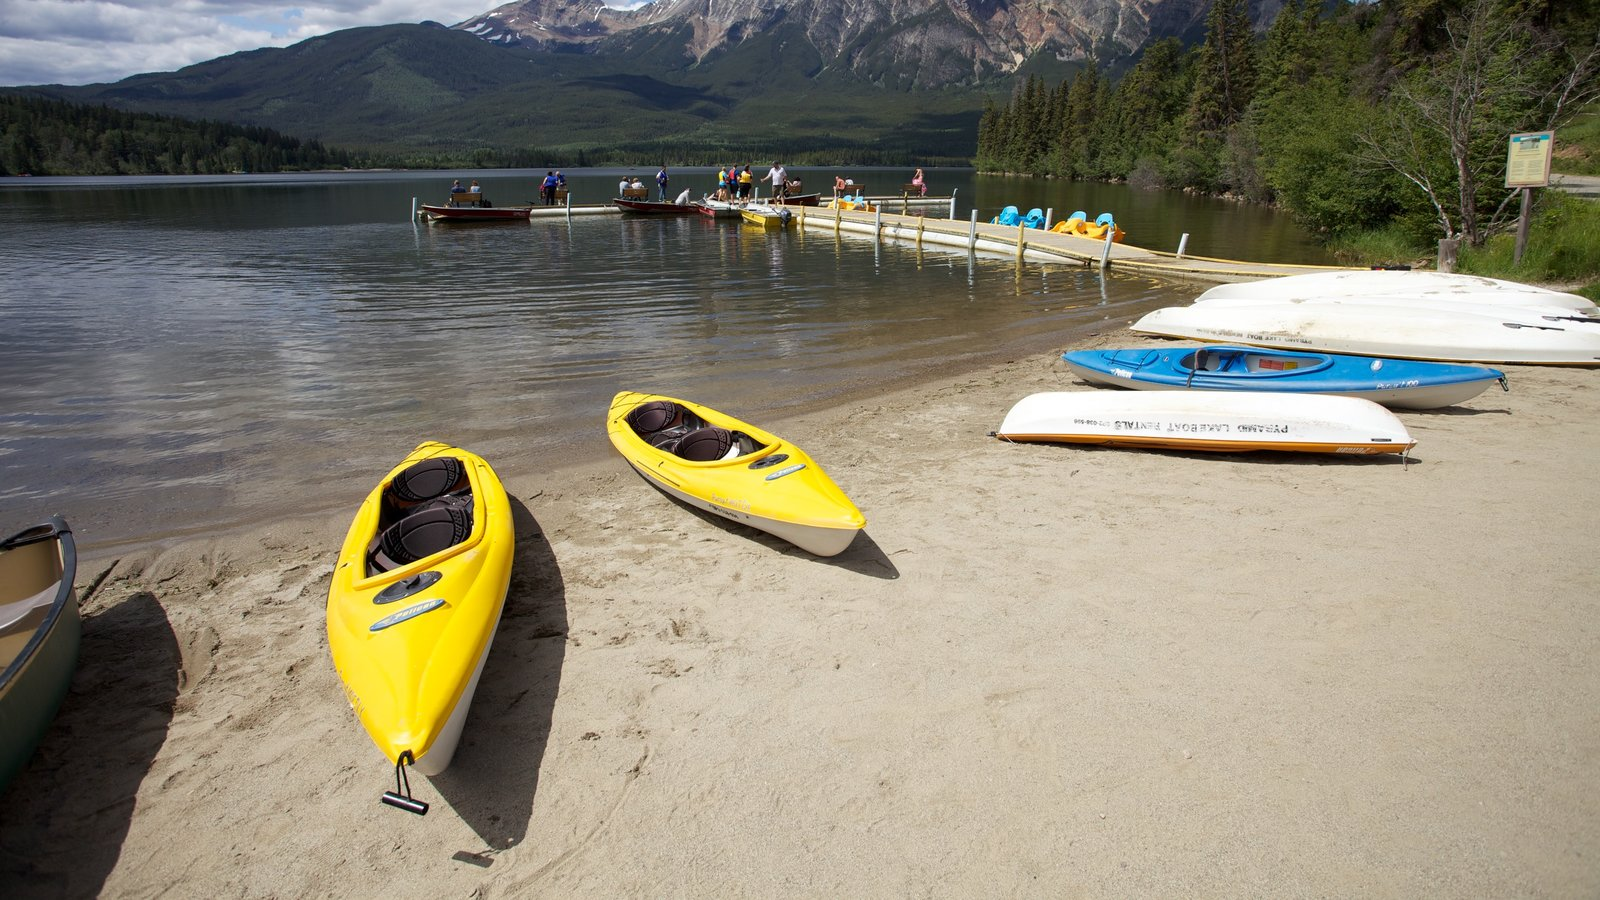 Jasper National Park which includes a sandy beach